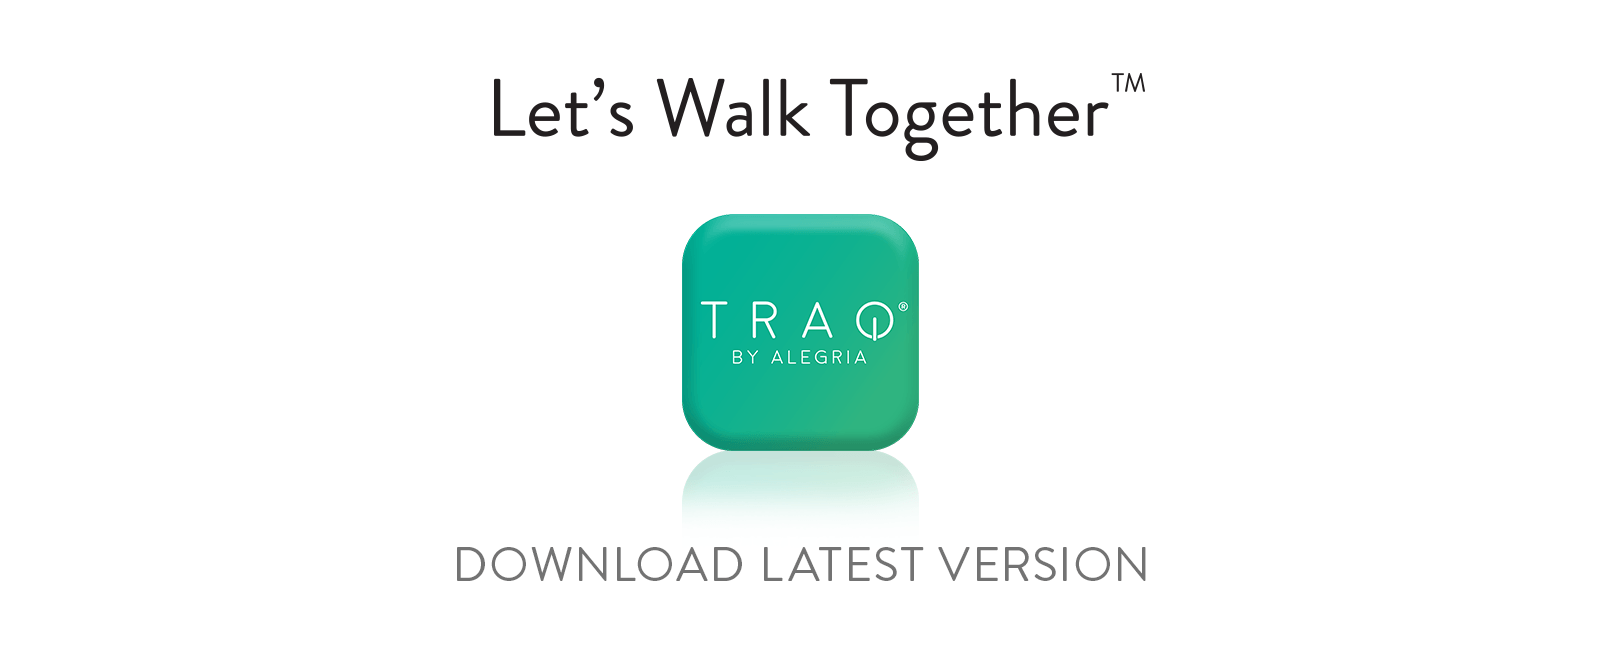 Download the latest version of Traq by Alegria® app